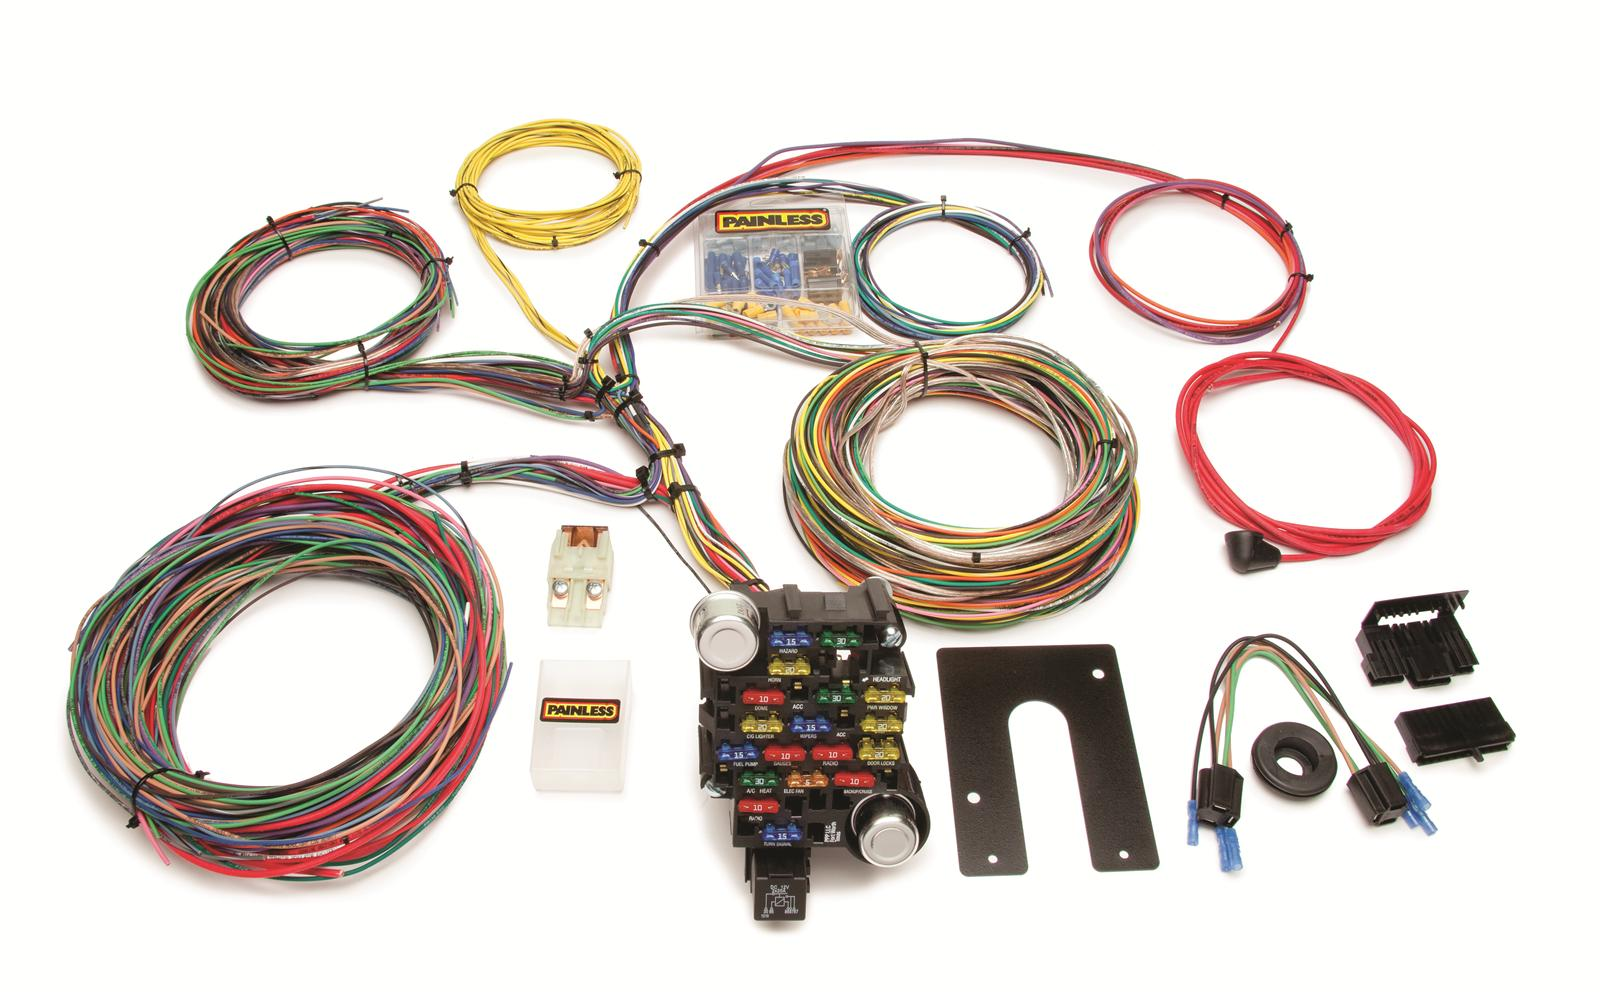 Painless Performance 28-Circuit Universal Harnesses 10202 - Free Shipping  on Orders Over $49 at Summit Racing